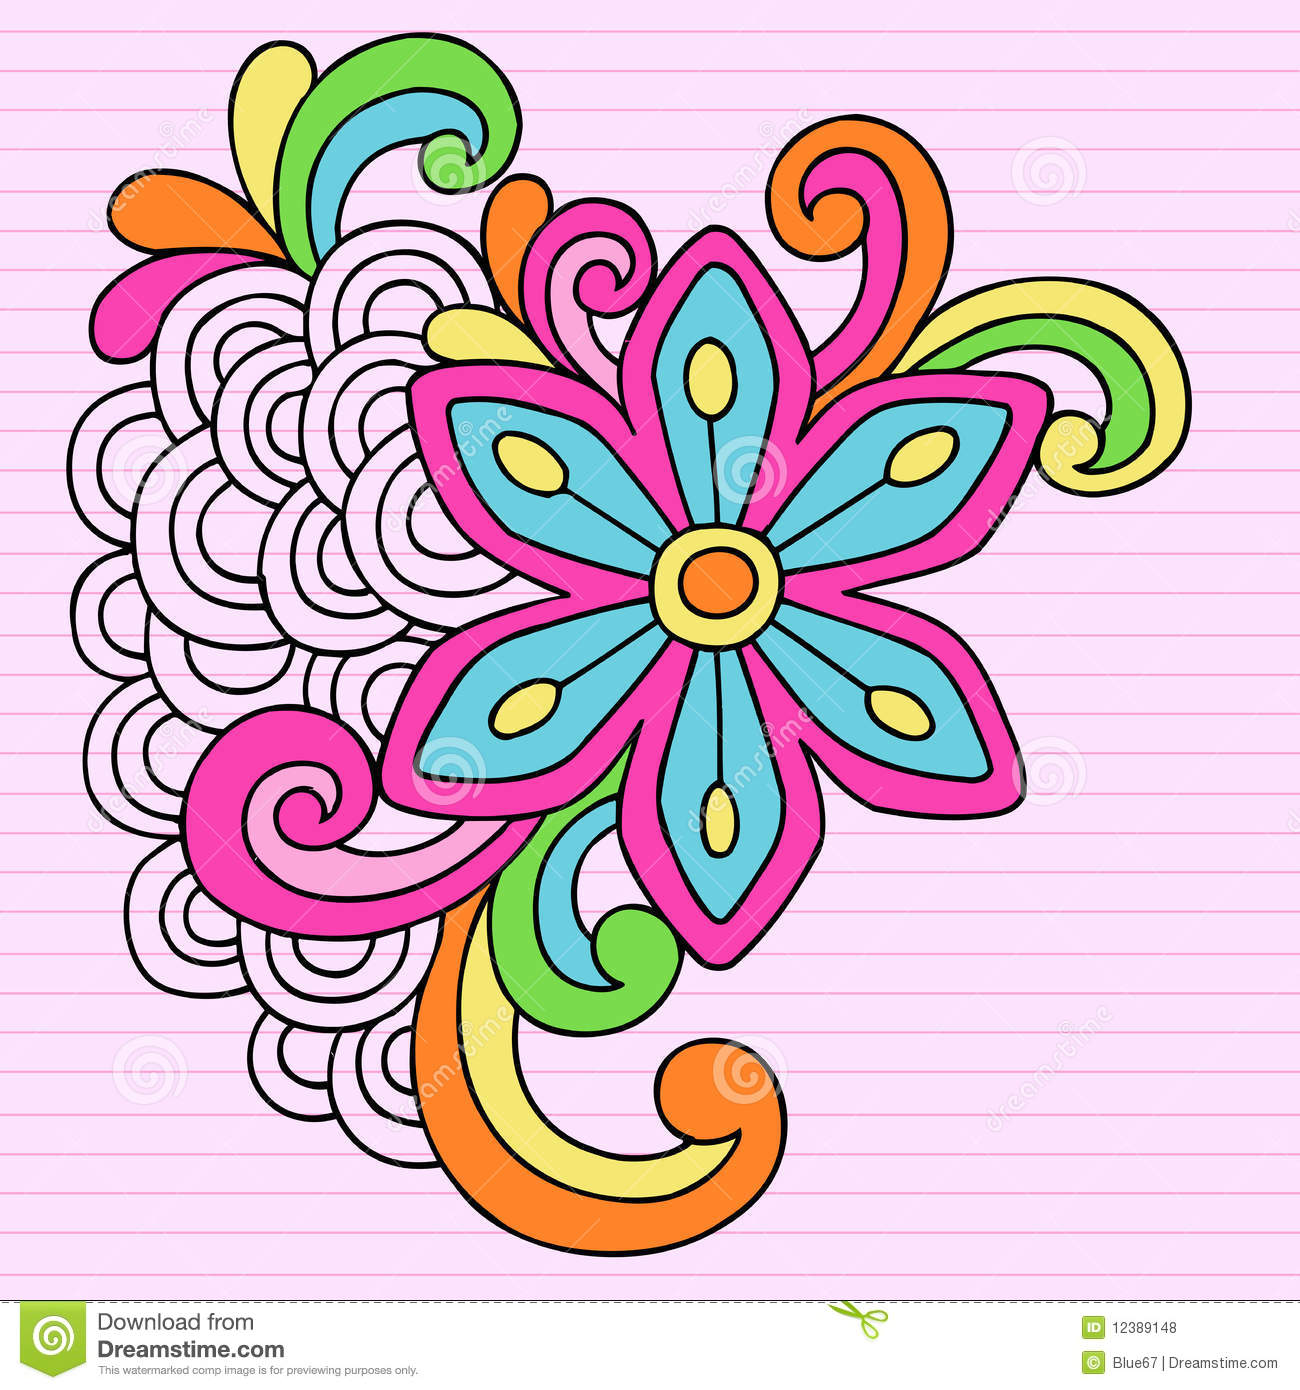 Psychedelic Big Flower Notebook Doodle Vector Stock Vector